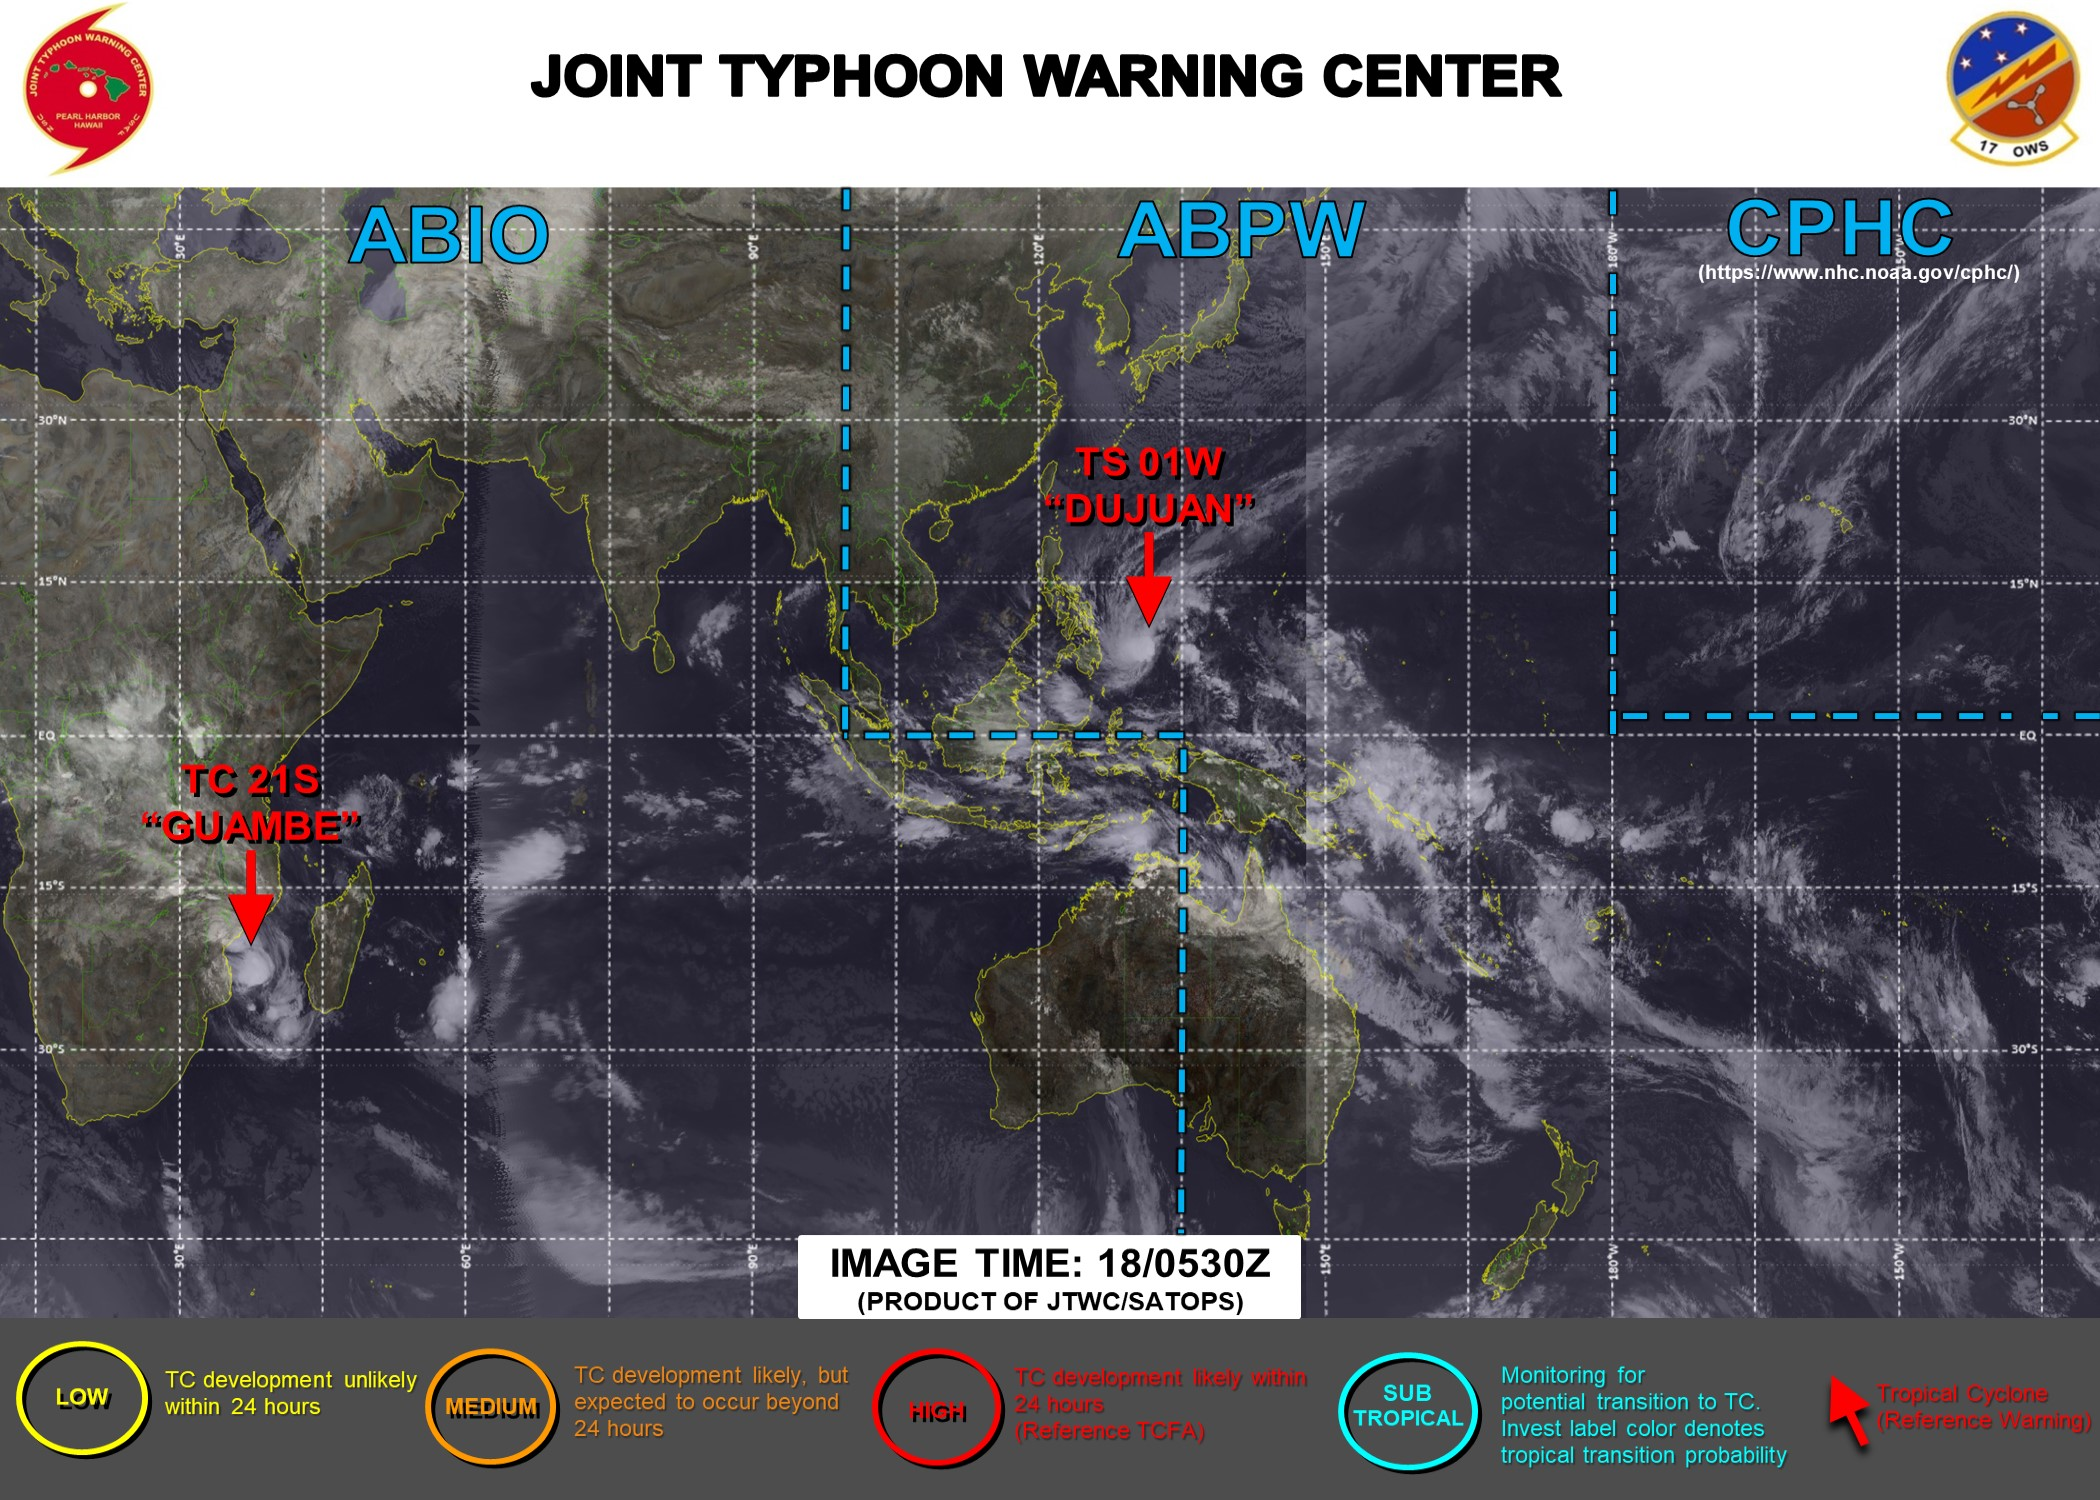 18/06UTC. JTWC IS ISSUING 6HOURLY WARNINGS ON 01W AND 12HOURLY WARNINGS ON 21S. 3 HOURLY SATELLITE BULLETINS ARE ISSUED FOR BOTH SYSTEMS.